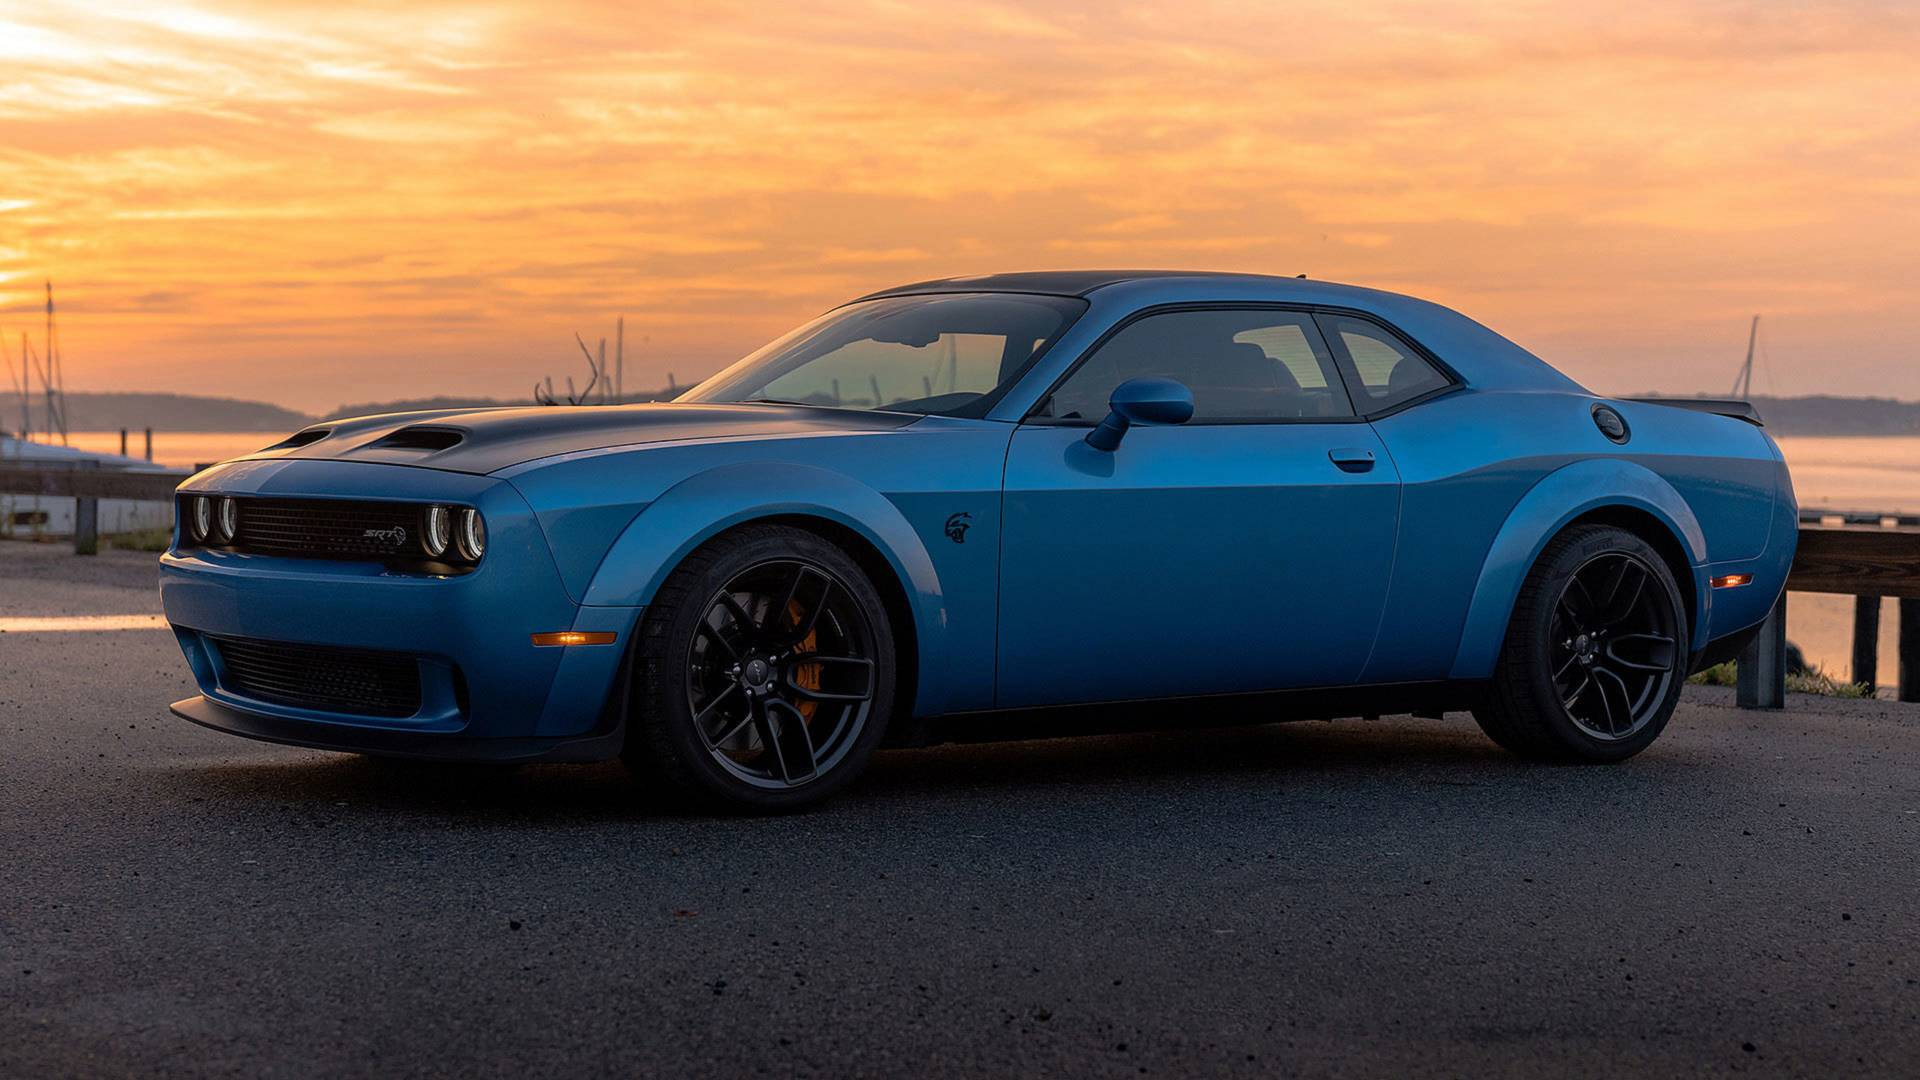 52 All New 2019 Dodge Challenger Srt Release Date and Concept